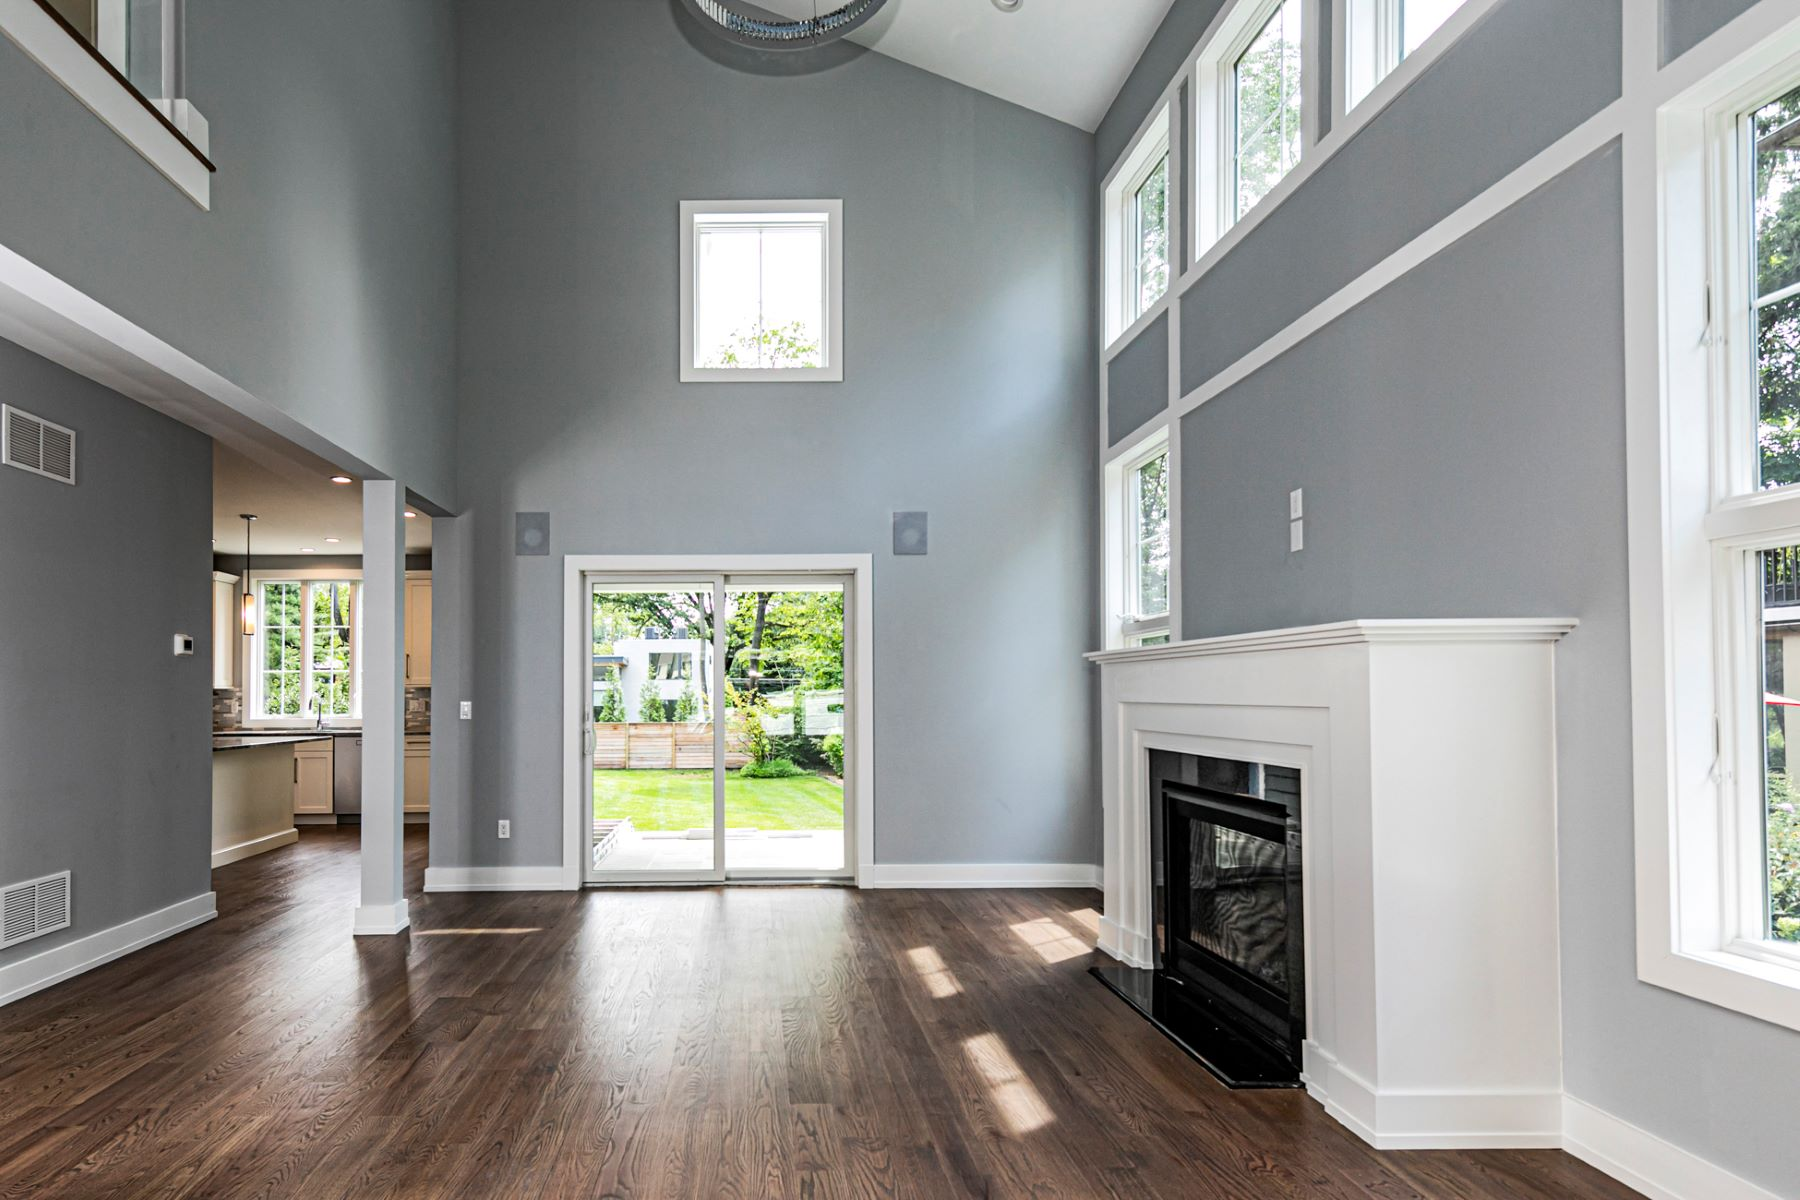 Additional photo for property listing at Distinctive New Home, Blocks from Nassau Street 49 Patton Avenue, Princeton, New Jersey 08540 United States